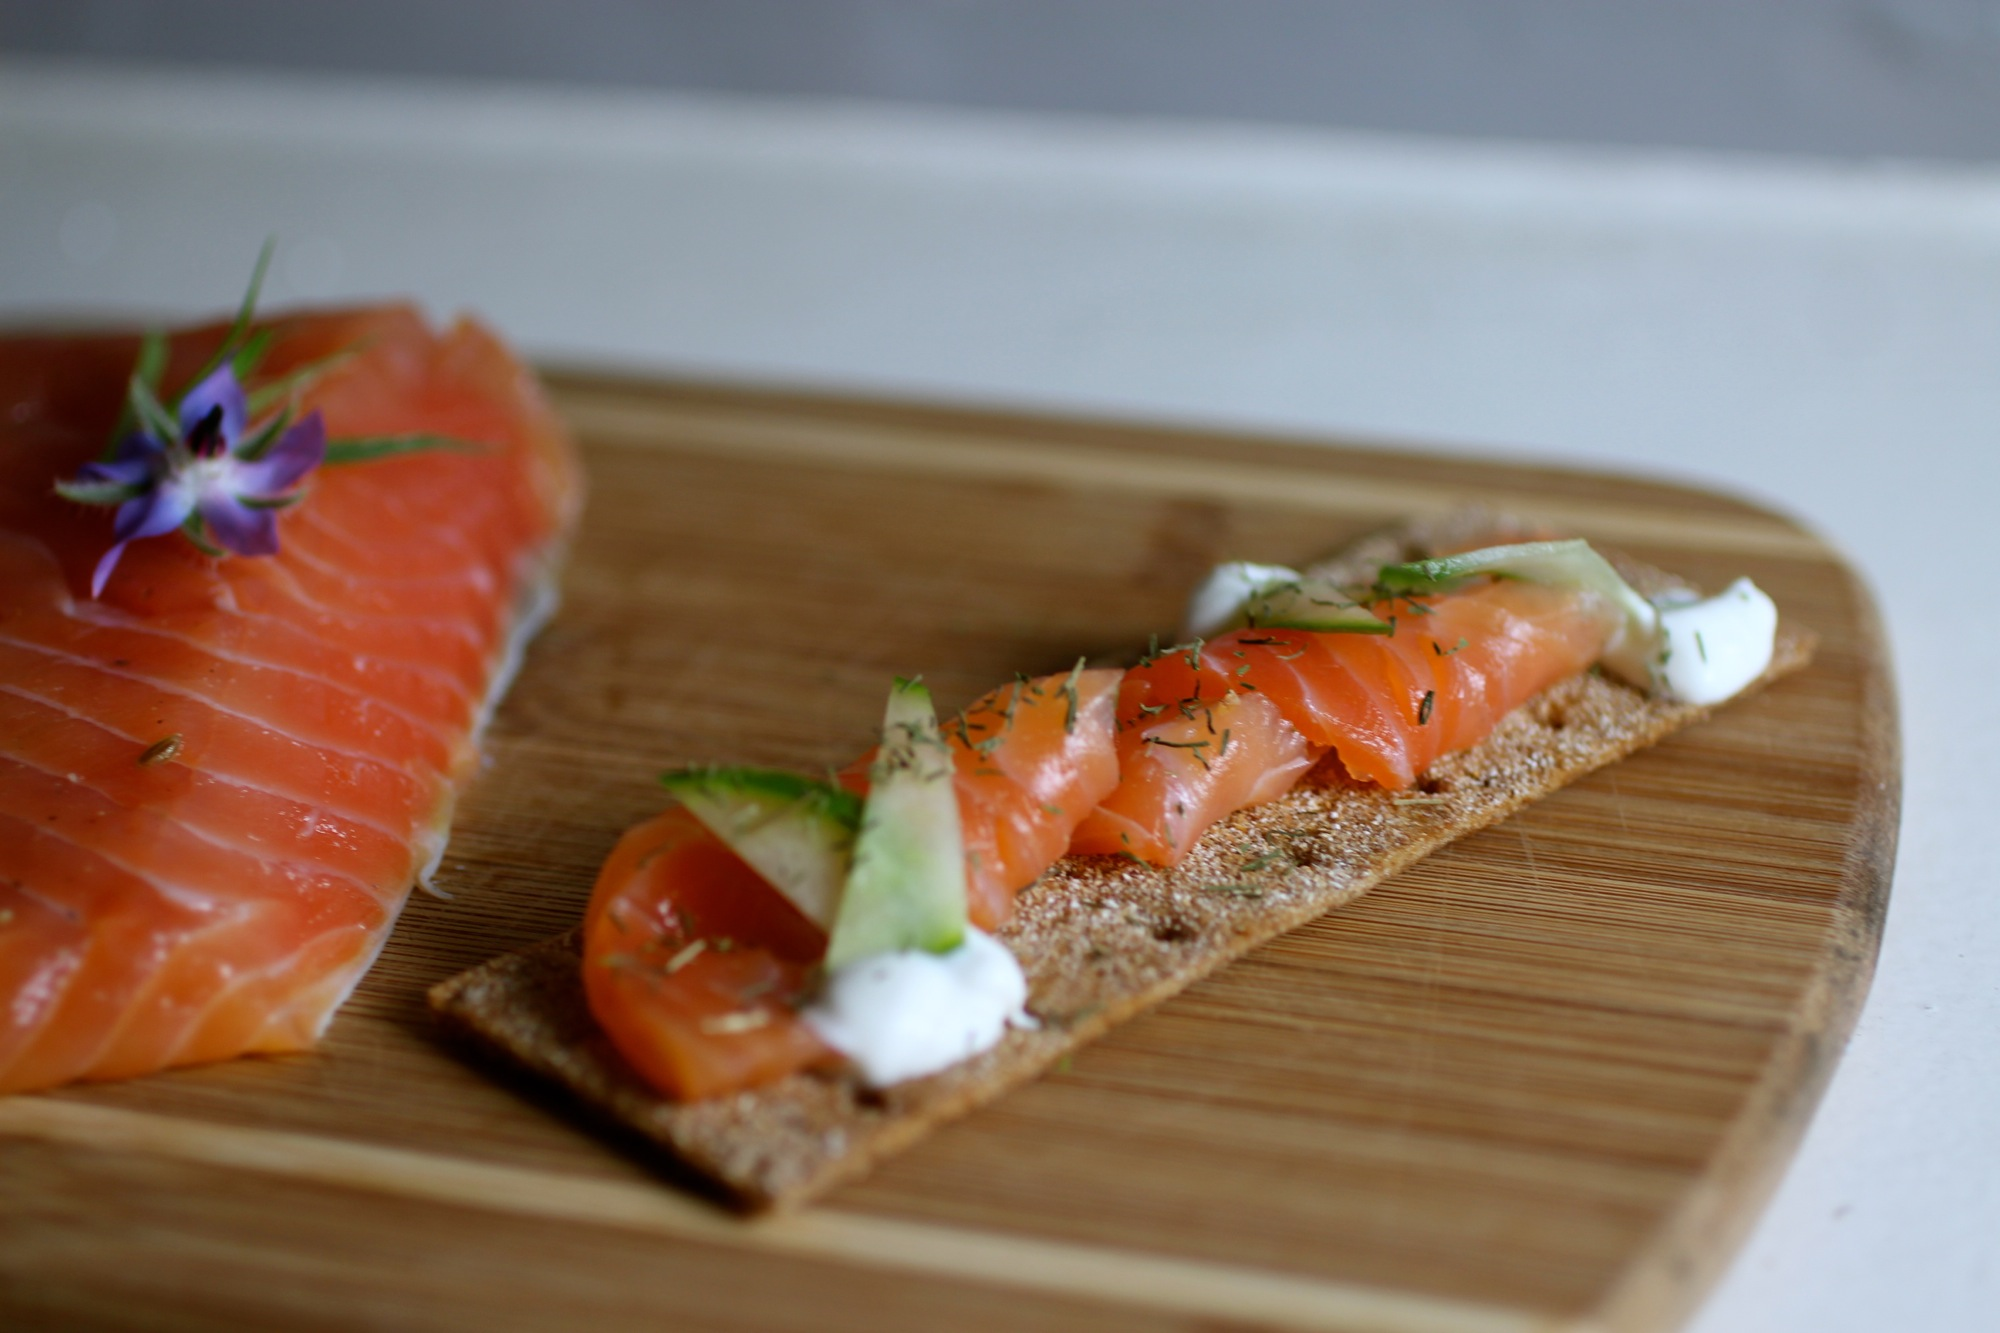 Gravlax with crème fraîche, cucumber, and dill on rye cracker.